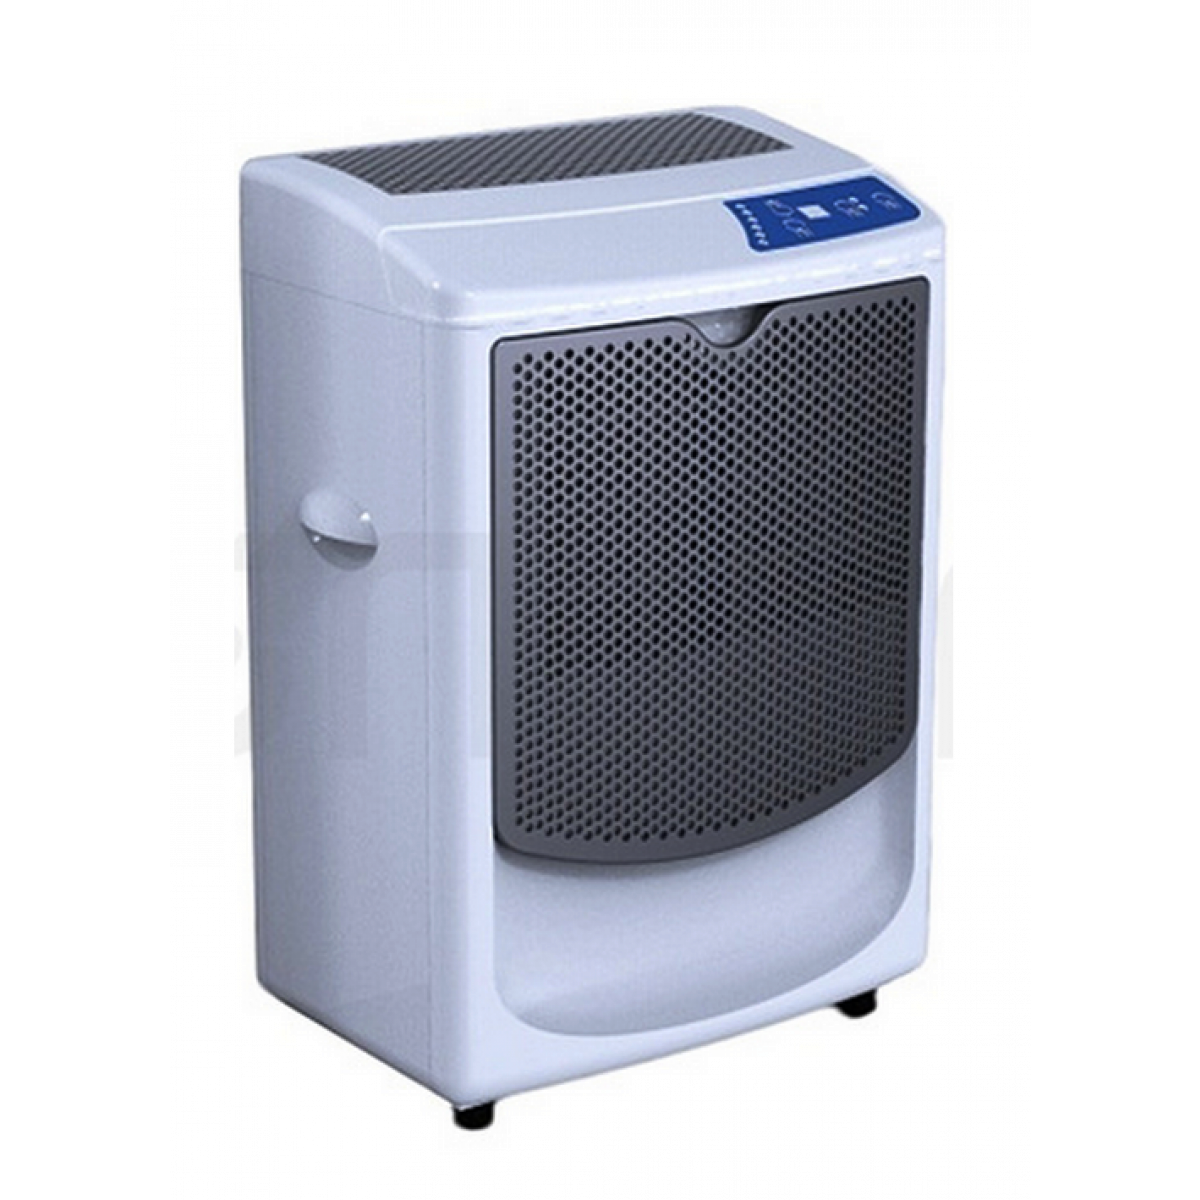 A Small Dehumidifier For Bedroom For Sample